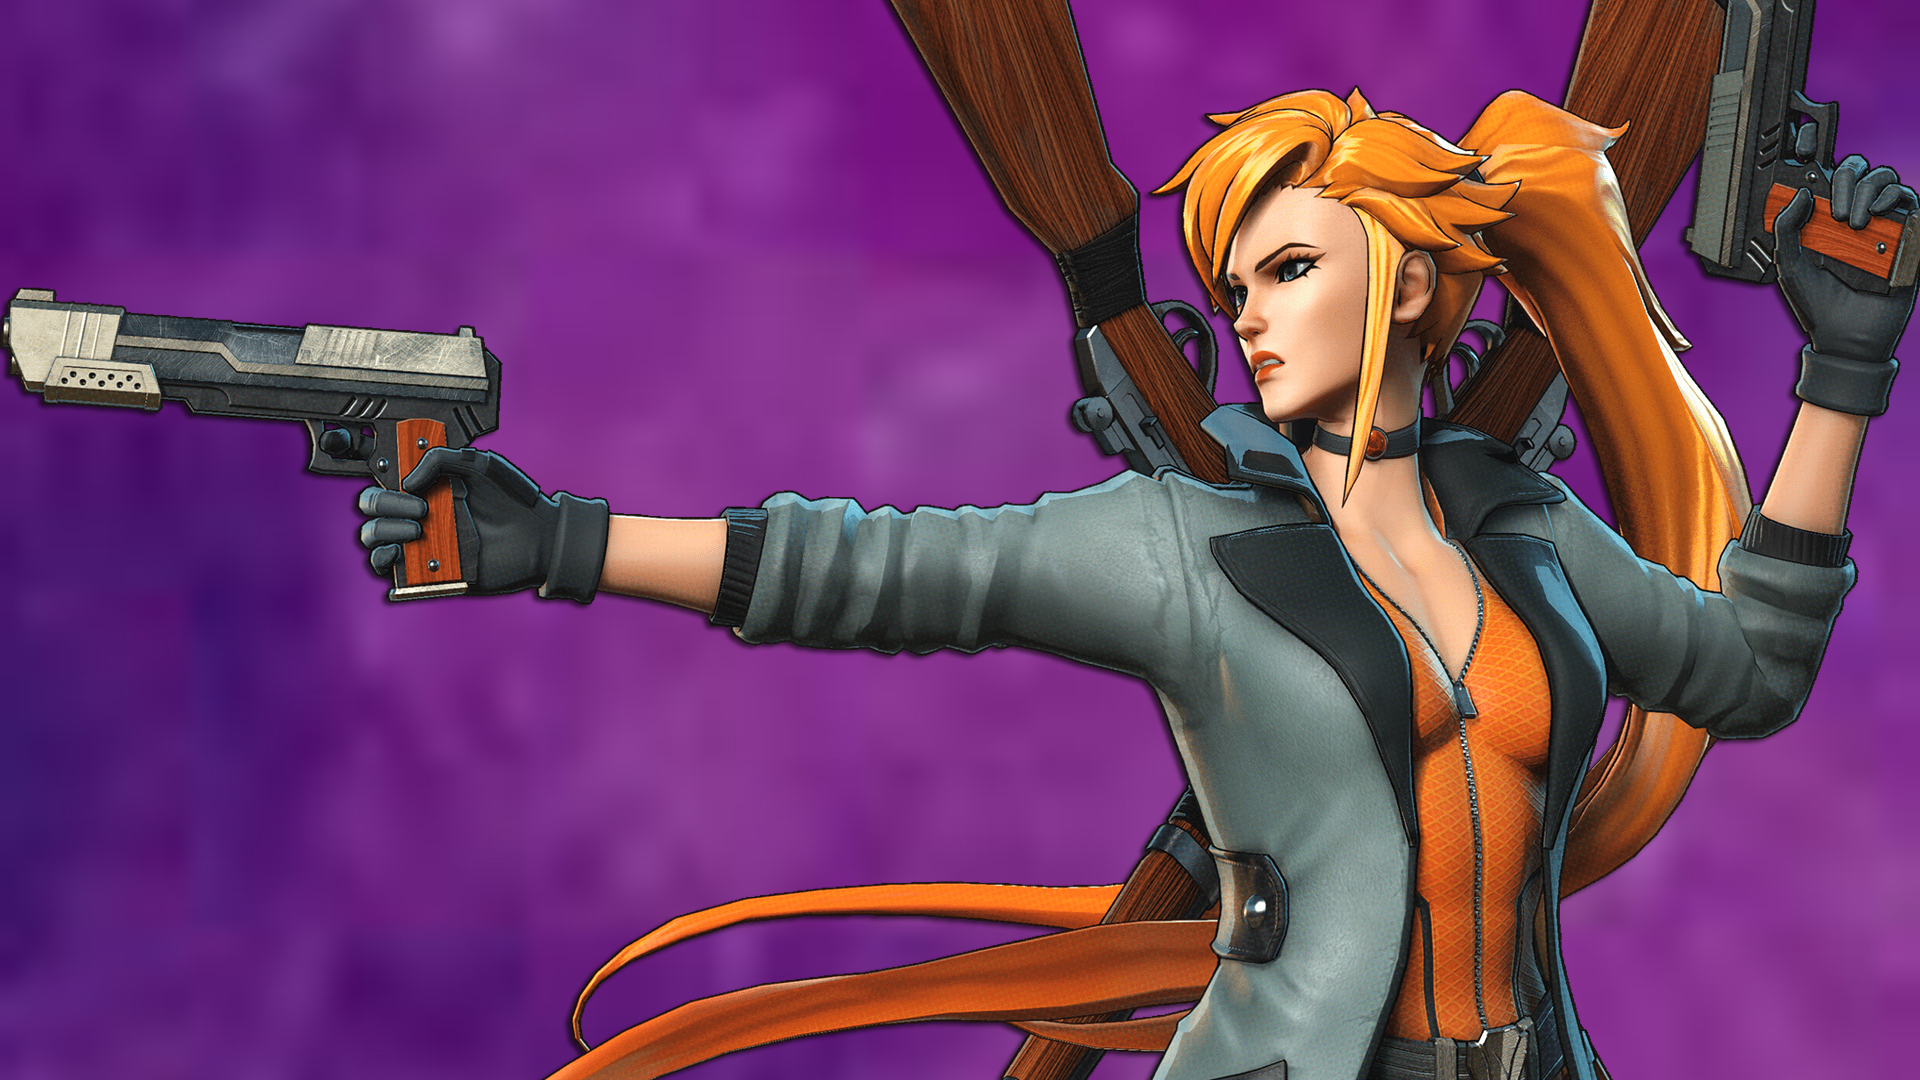 Marvel Ultimate Alliance 3 Elsa Bloodstone Why Is She Important